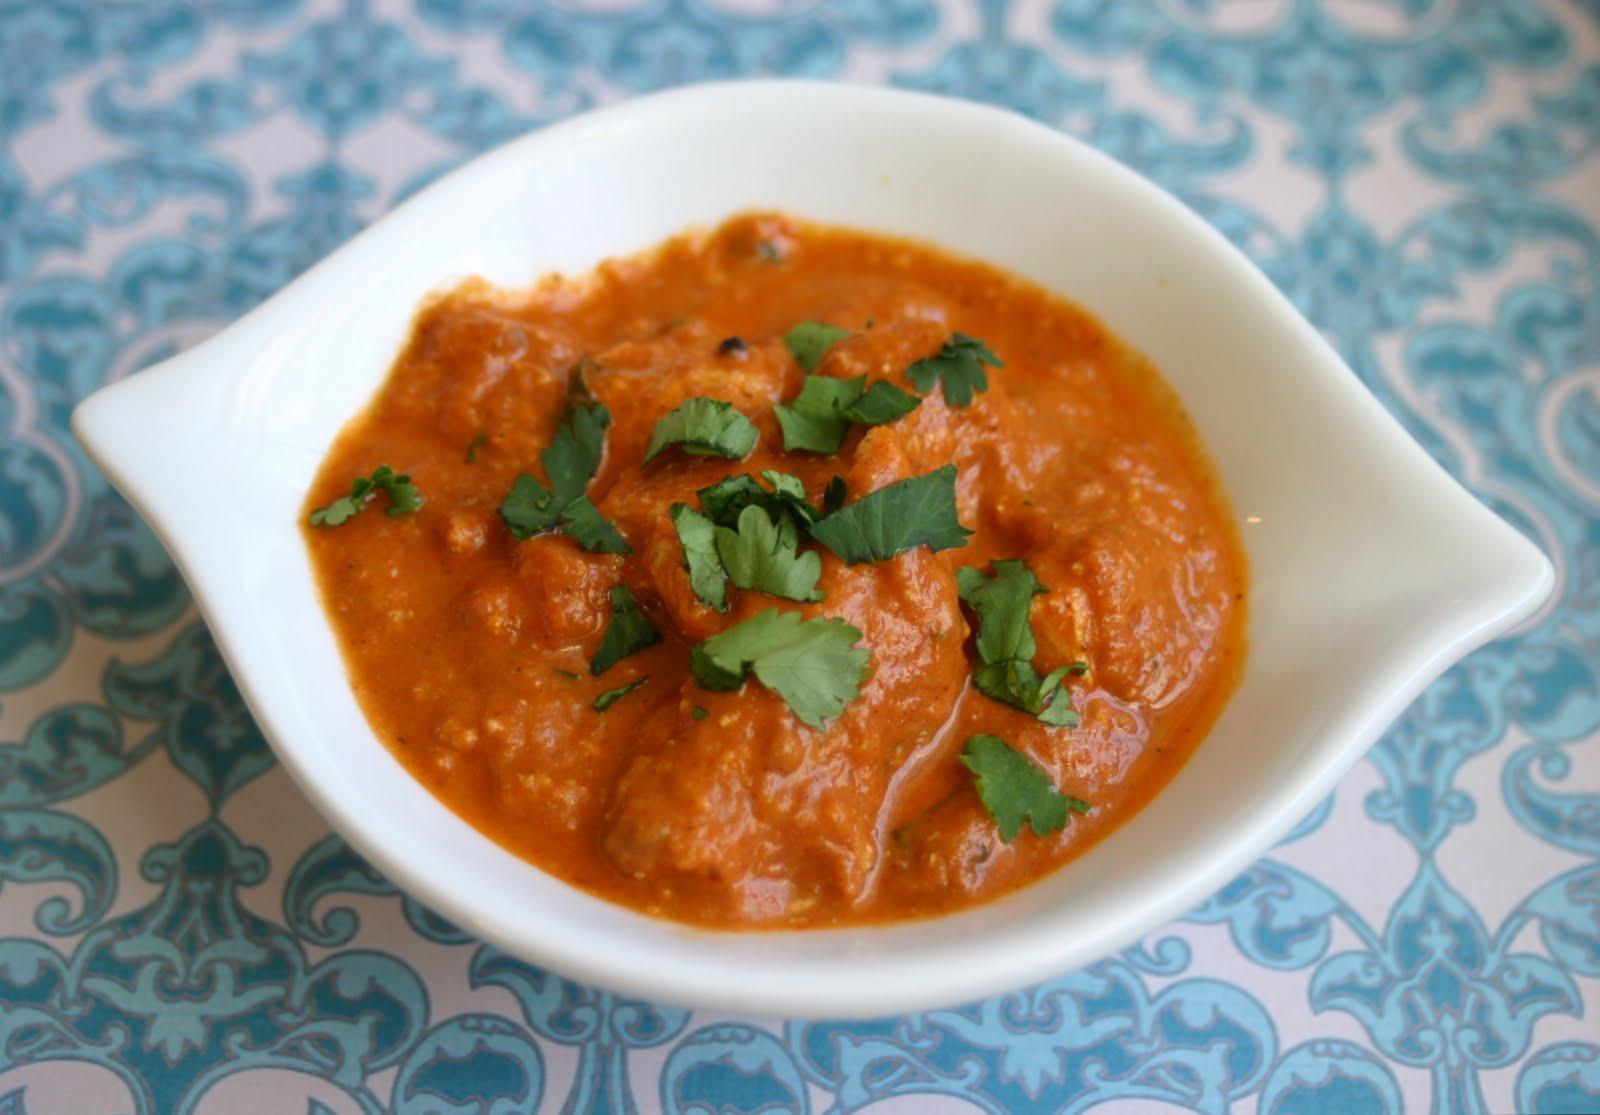 My Retro Kitchen: Chicken in Creamy Tomato Curry: Chicken Tikka Masala